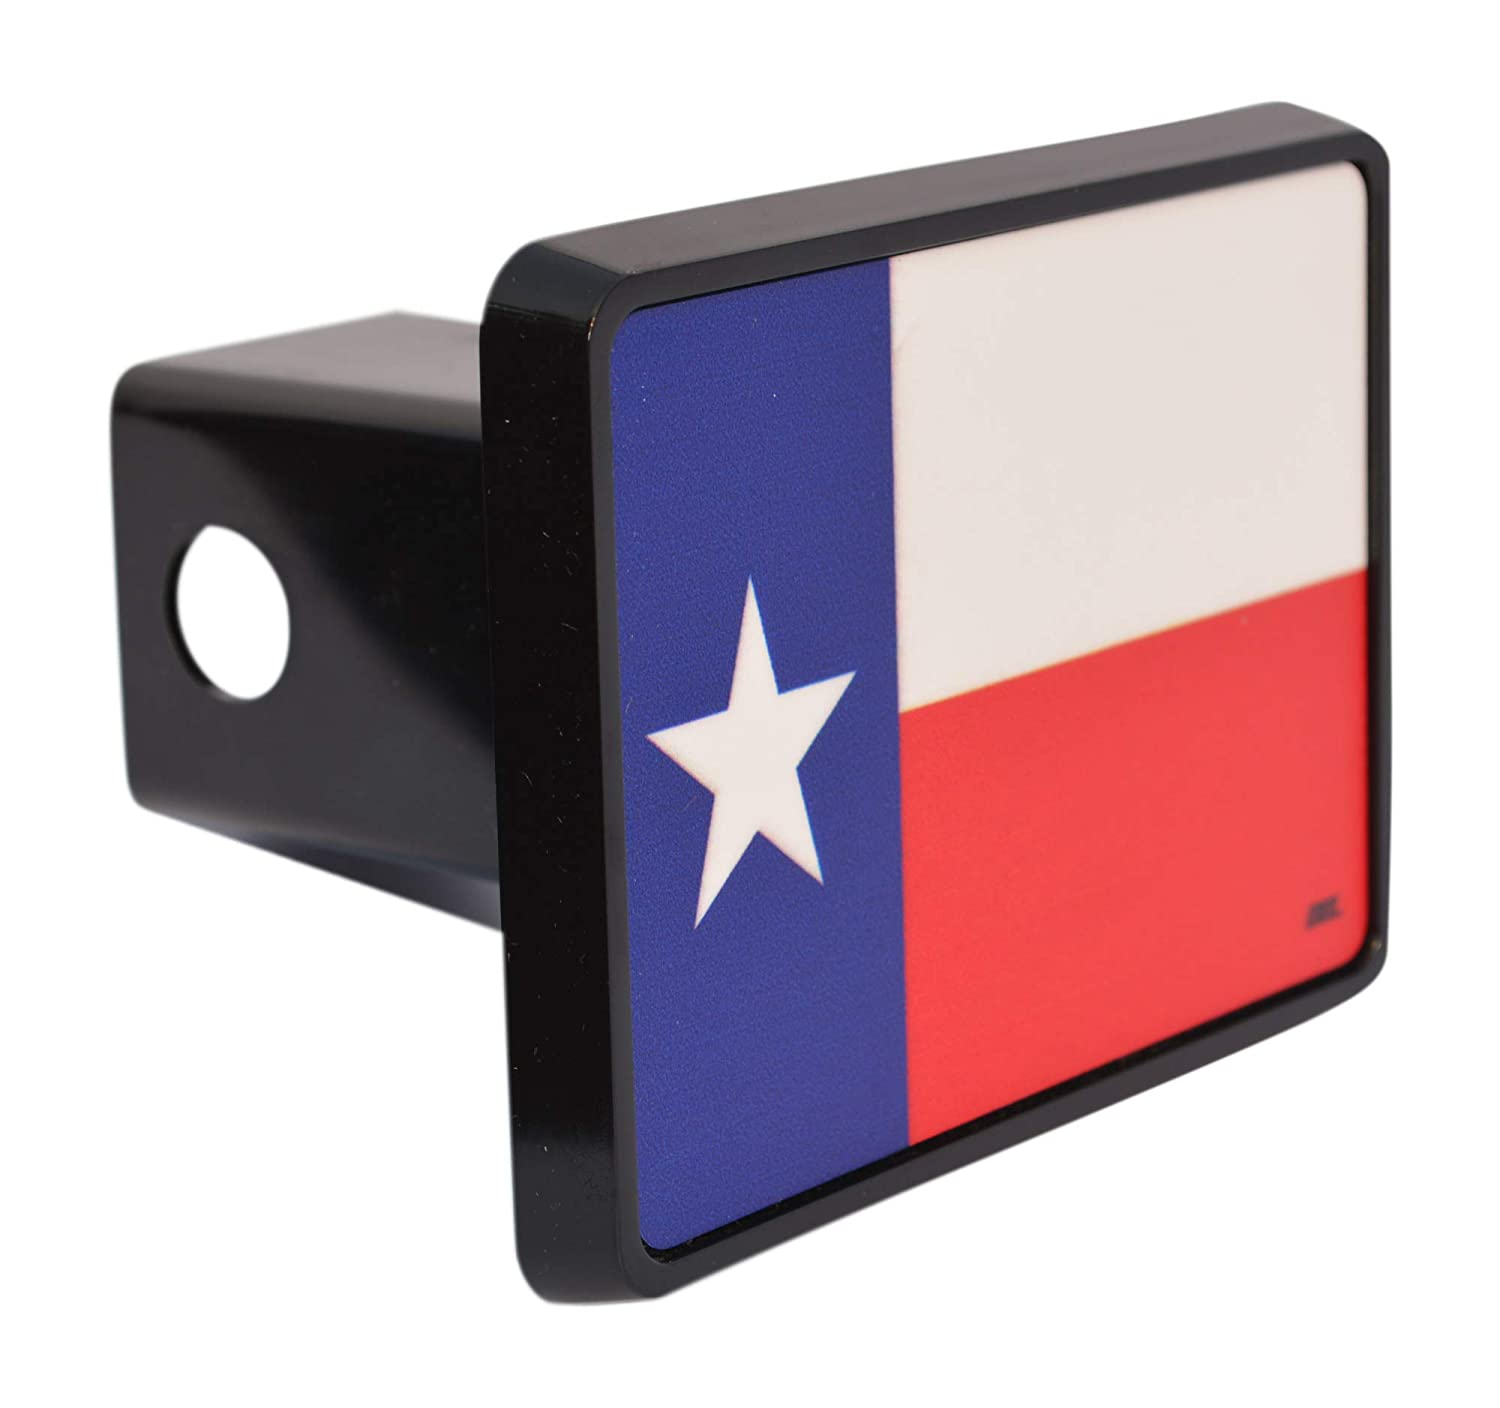 Rogue River Tactical Texas State Flag Trailer Hitch Cover Plug US Patriotic Lone Star State TX VV298